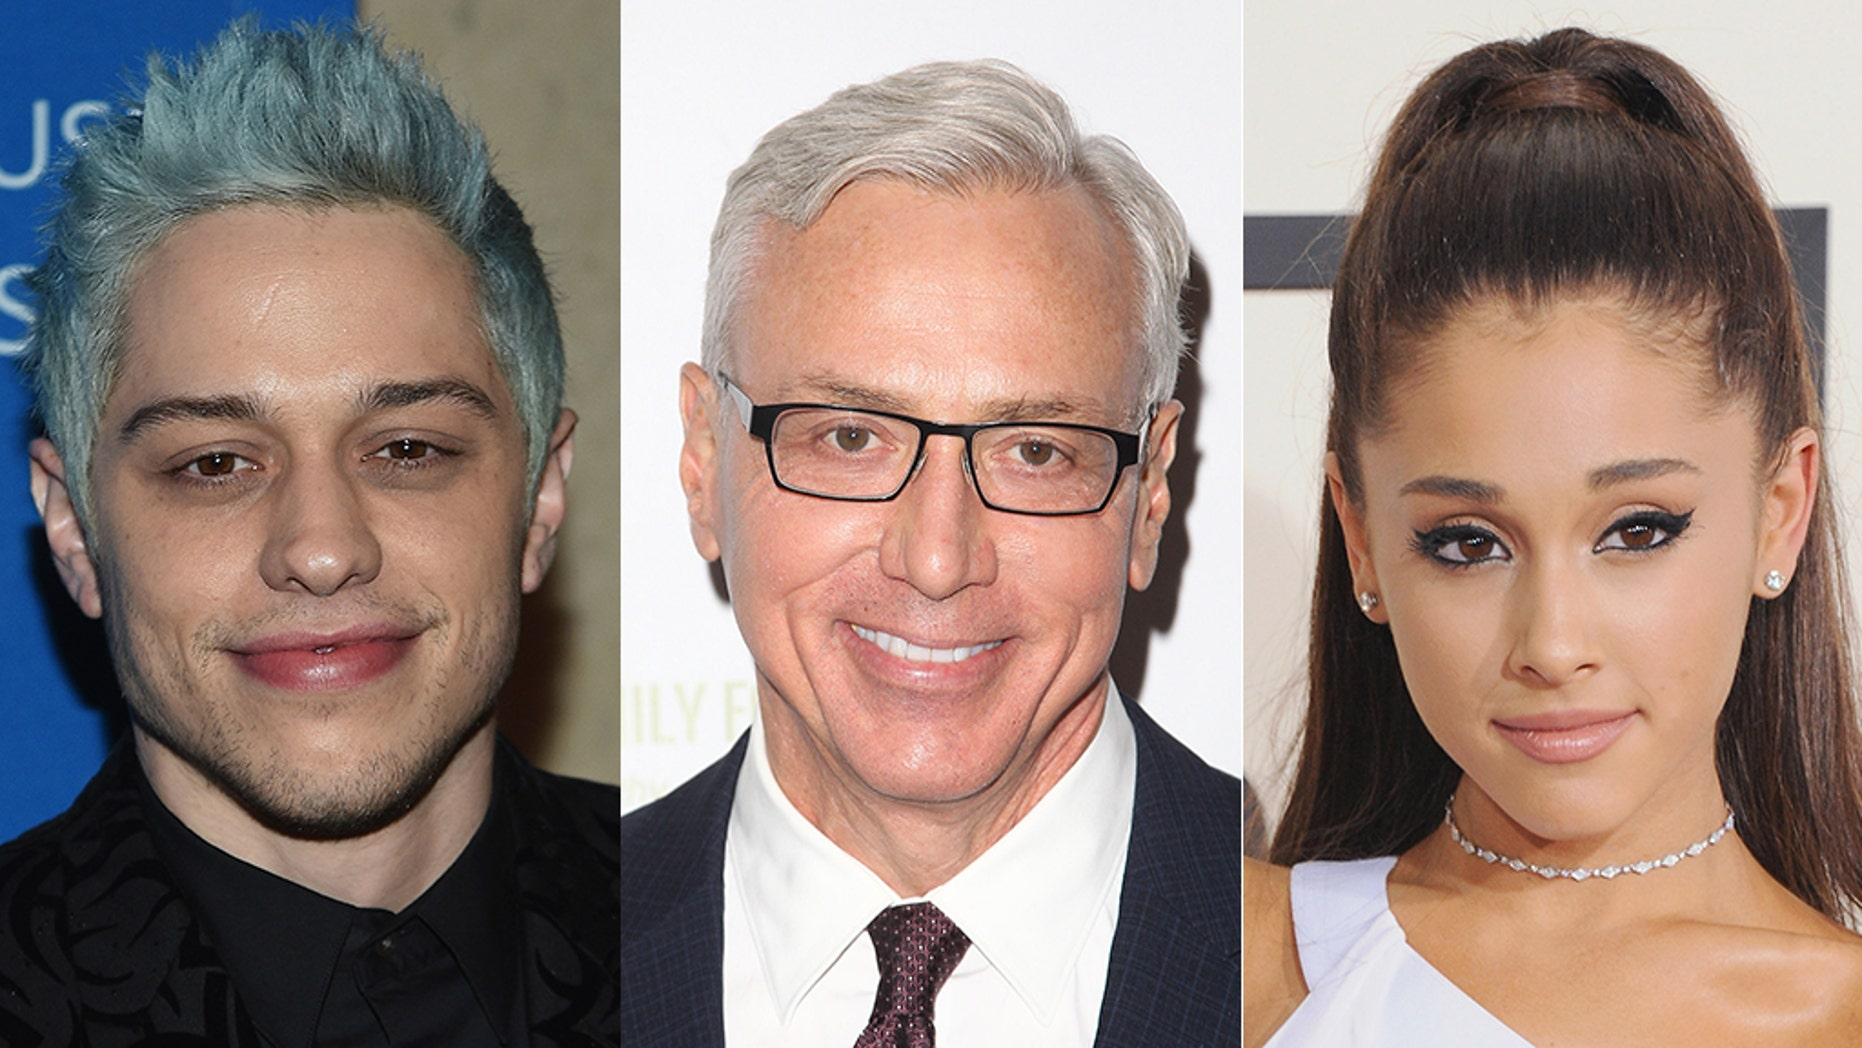 Dr. Drew, center, warned comedian Pete Davidson, left, to avoid any contact with his ex-fiancée singer Ariana Grande.<br>